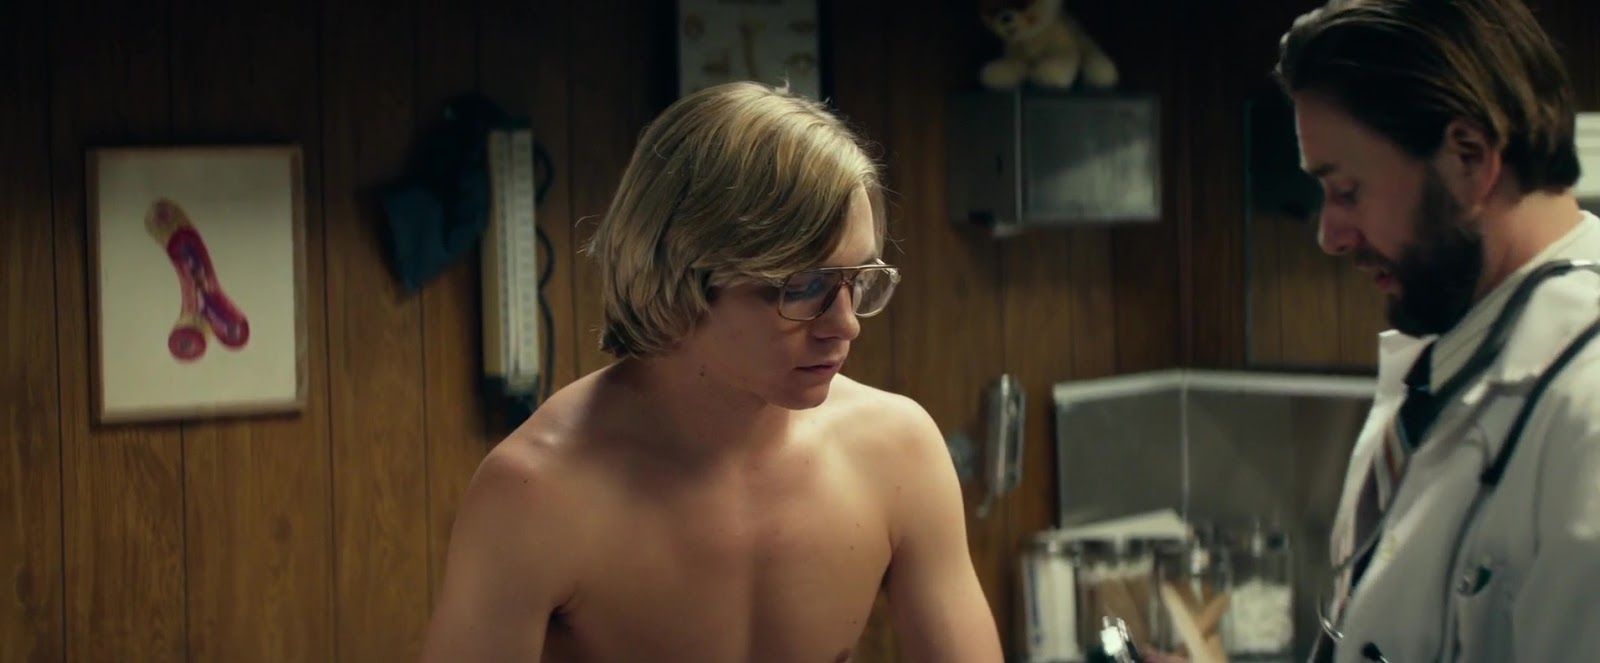 ross lynch naked with mia